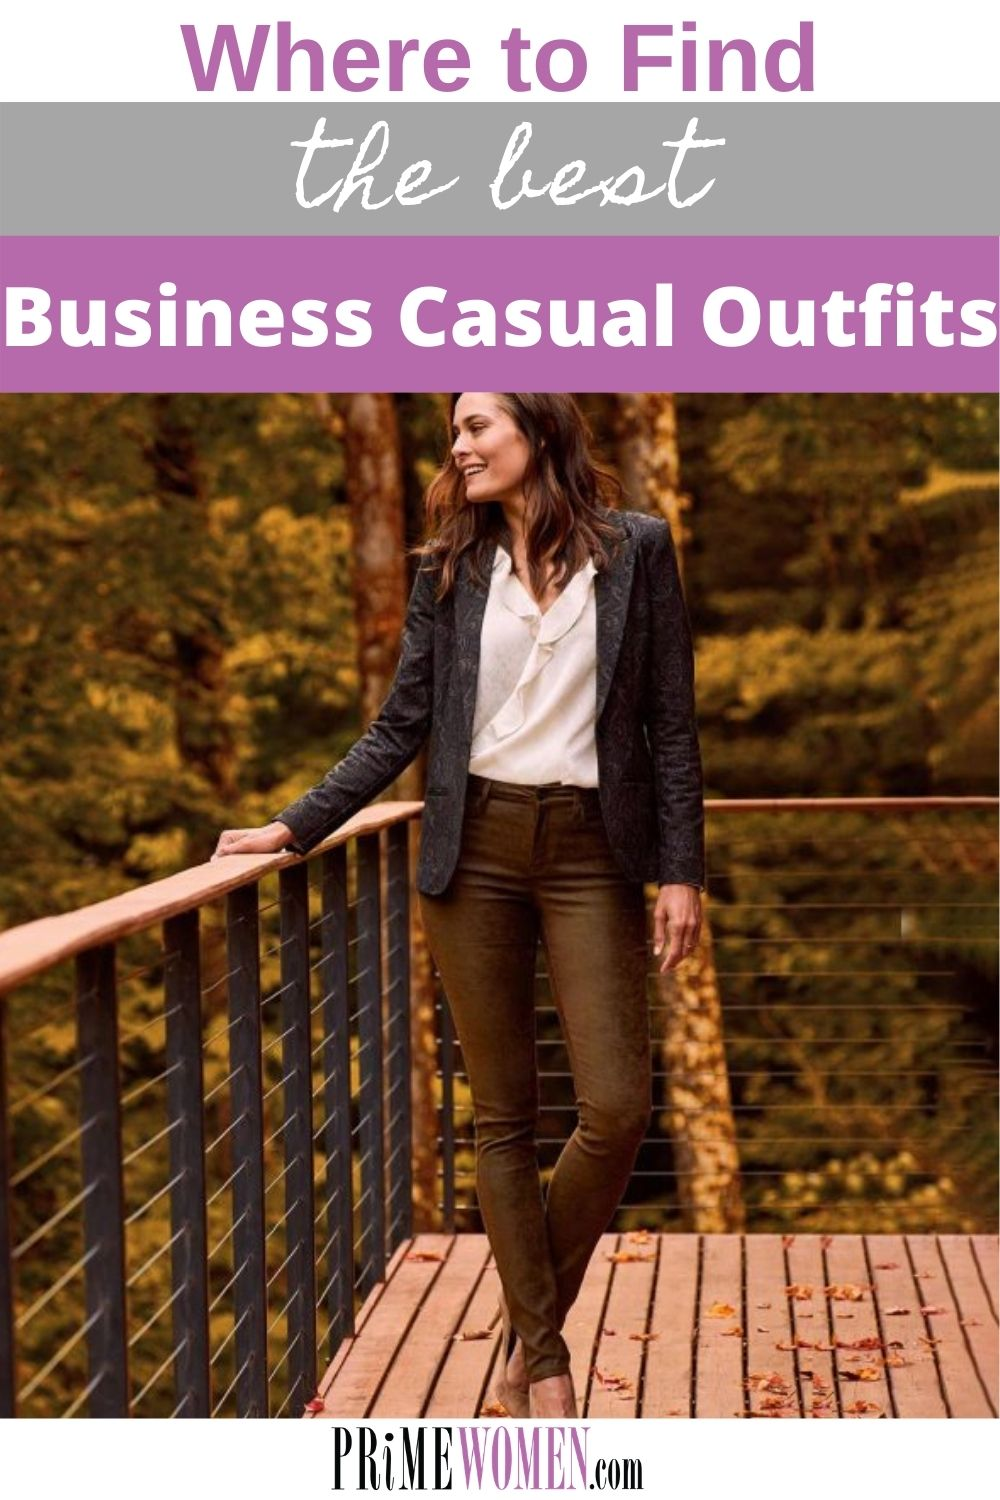 Where to find the best business casual outfits